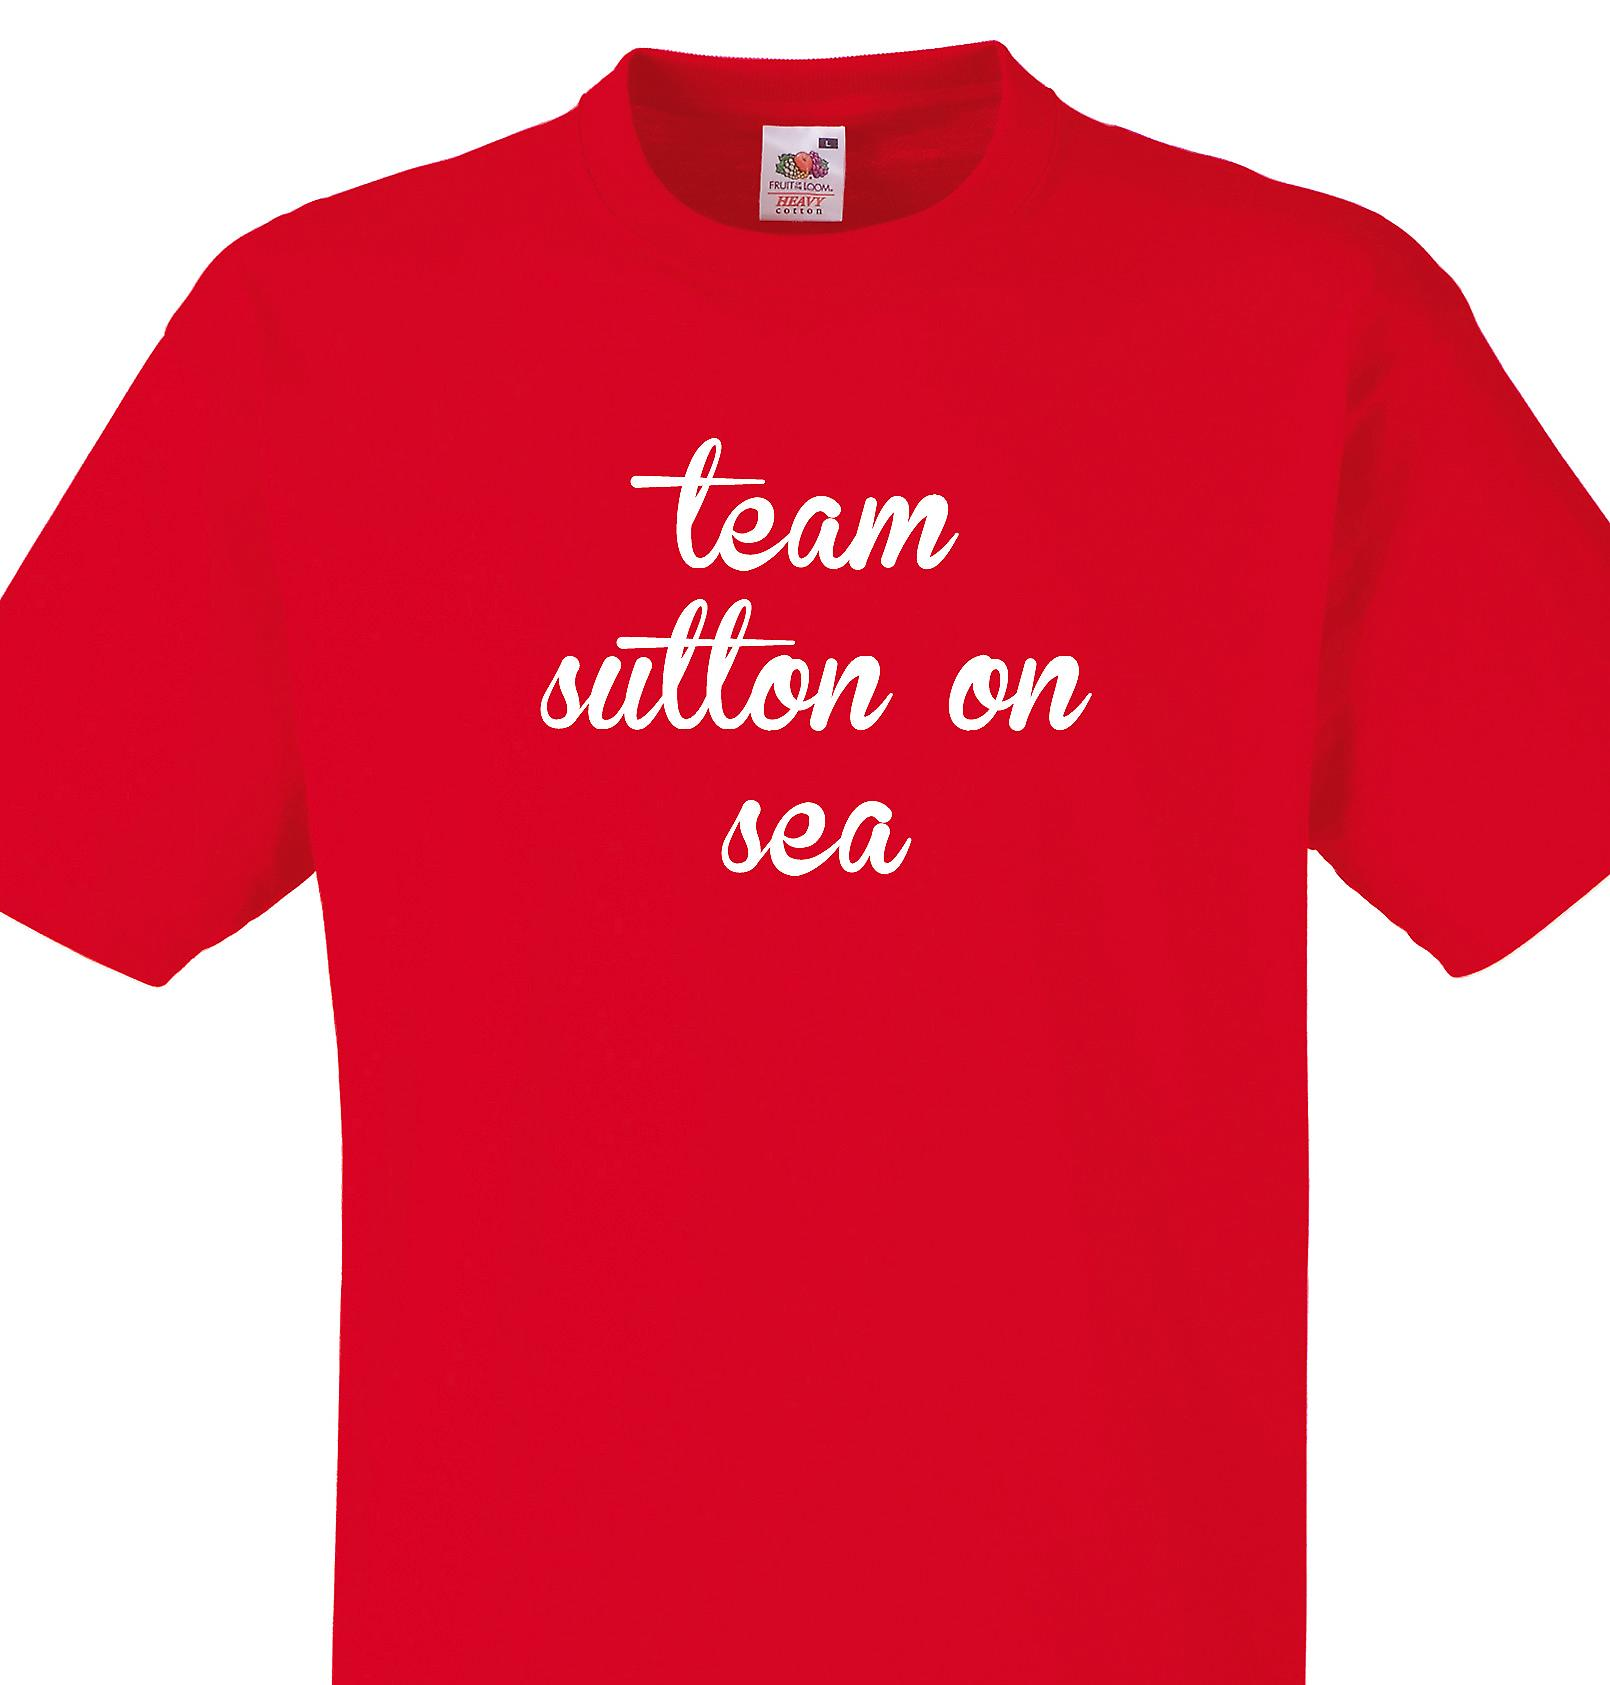 Team Sutton on sea Red T shirt